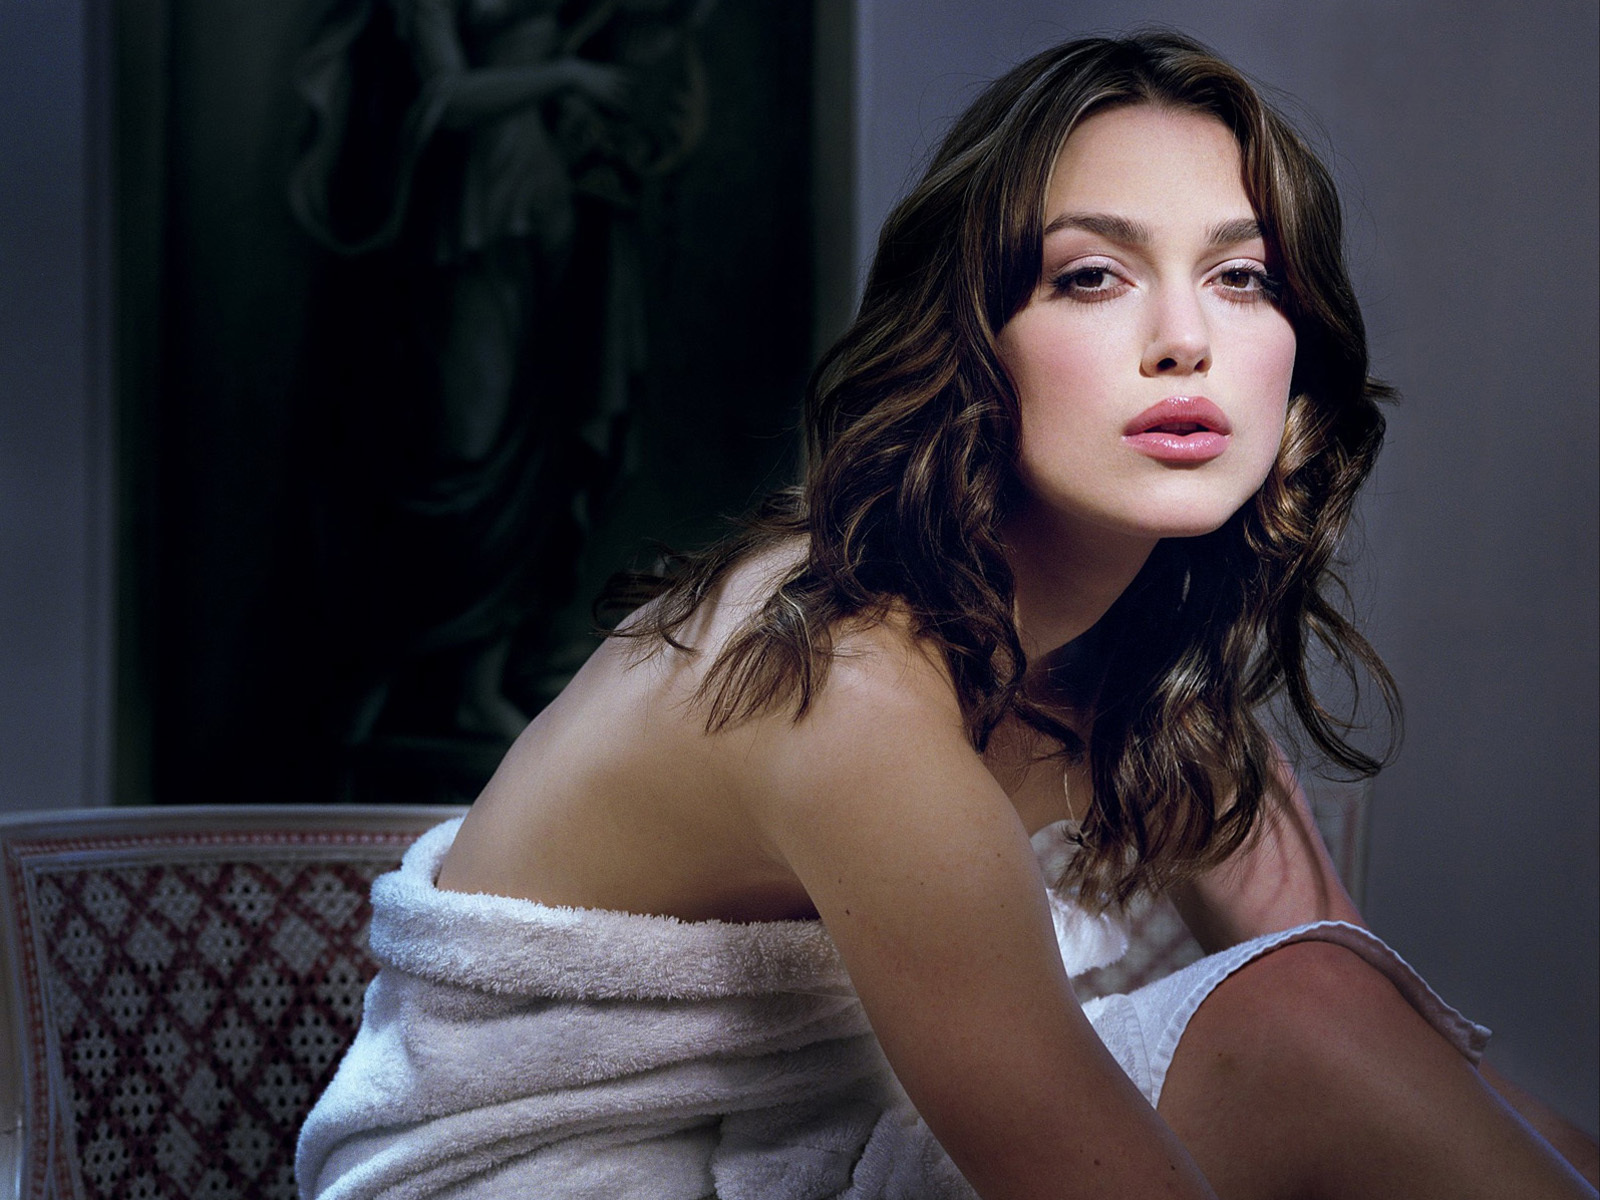 Hot Wanted Girls Keira Knightley Hot Wallpapers-1933